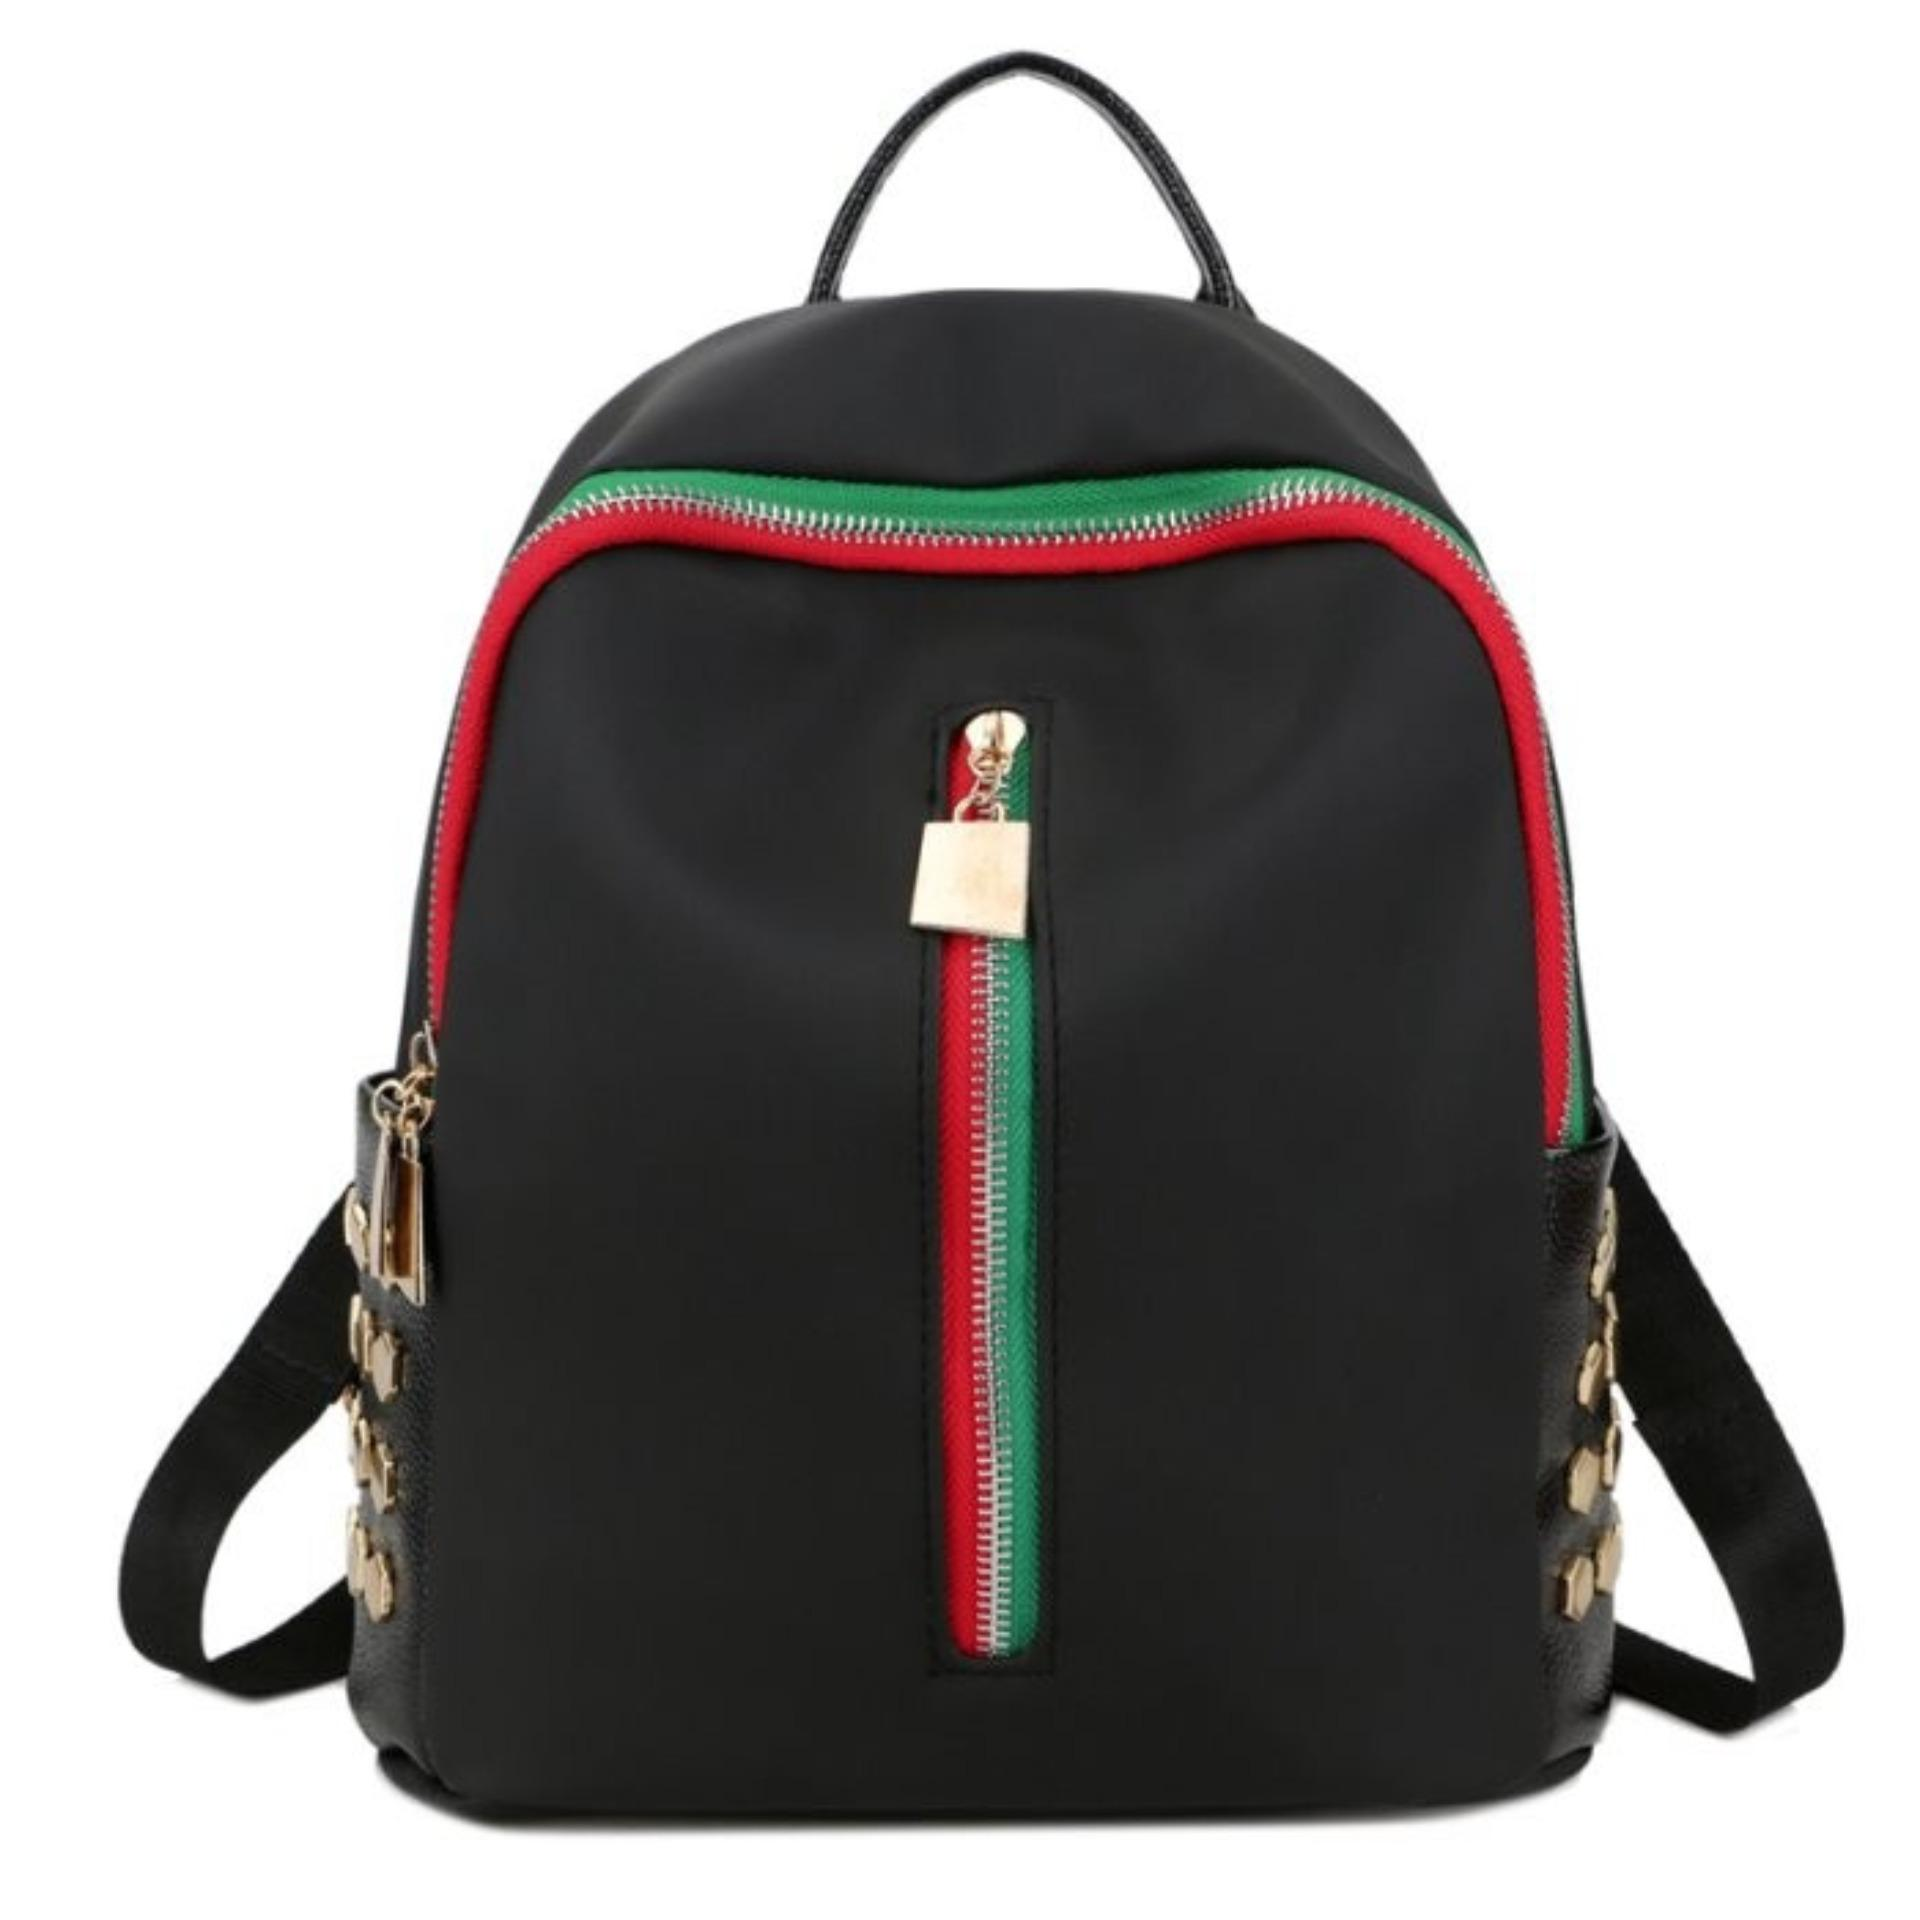 Jual Kgs Tas Ransel Mini Backpack Wanita Casual Red Green Vertical Zipper Hitam Branded Original